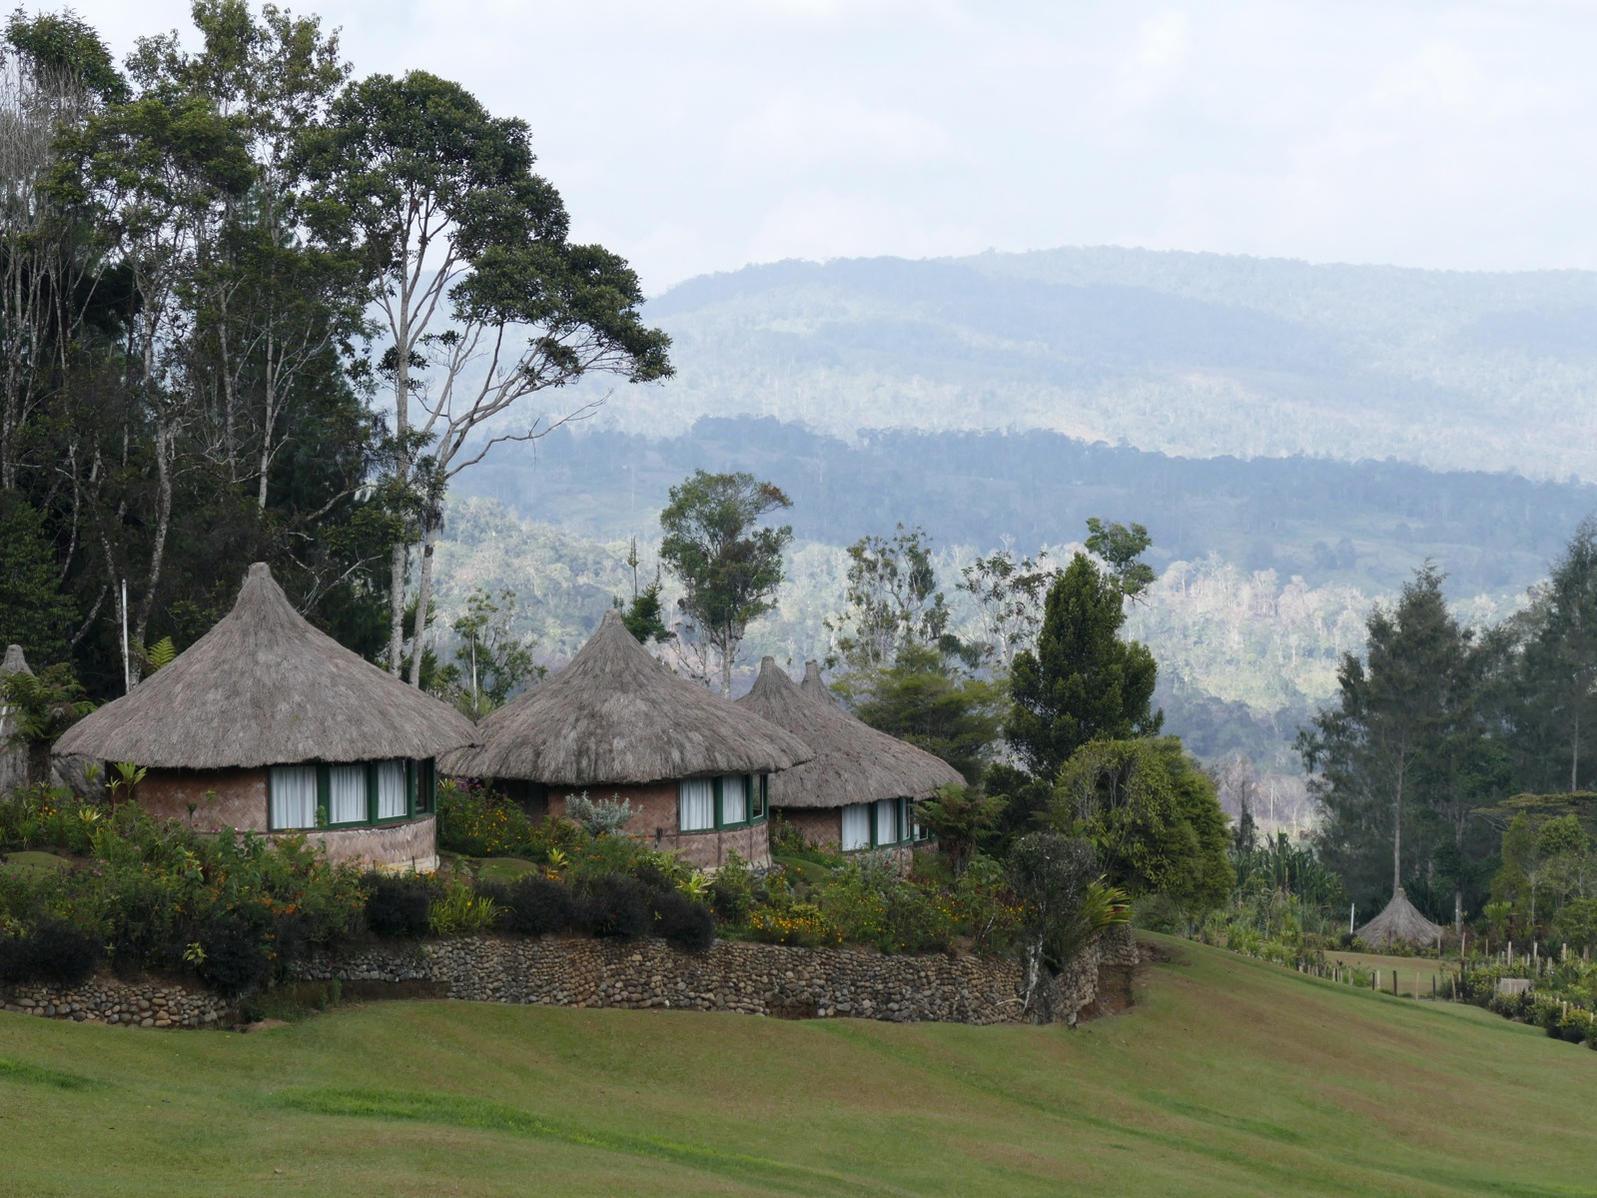 Ambua Lodge sits at 7,000 feet in Papua New Guinea's central highlands. Noah Strycker